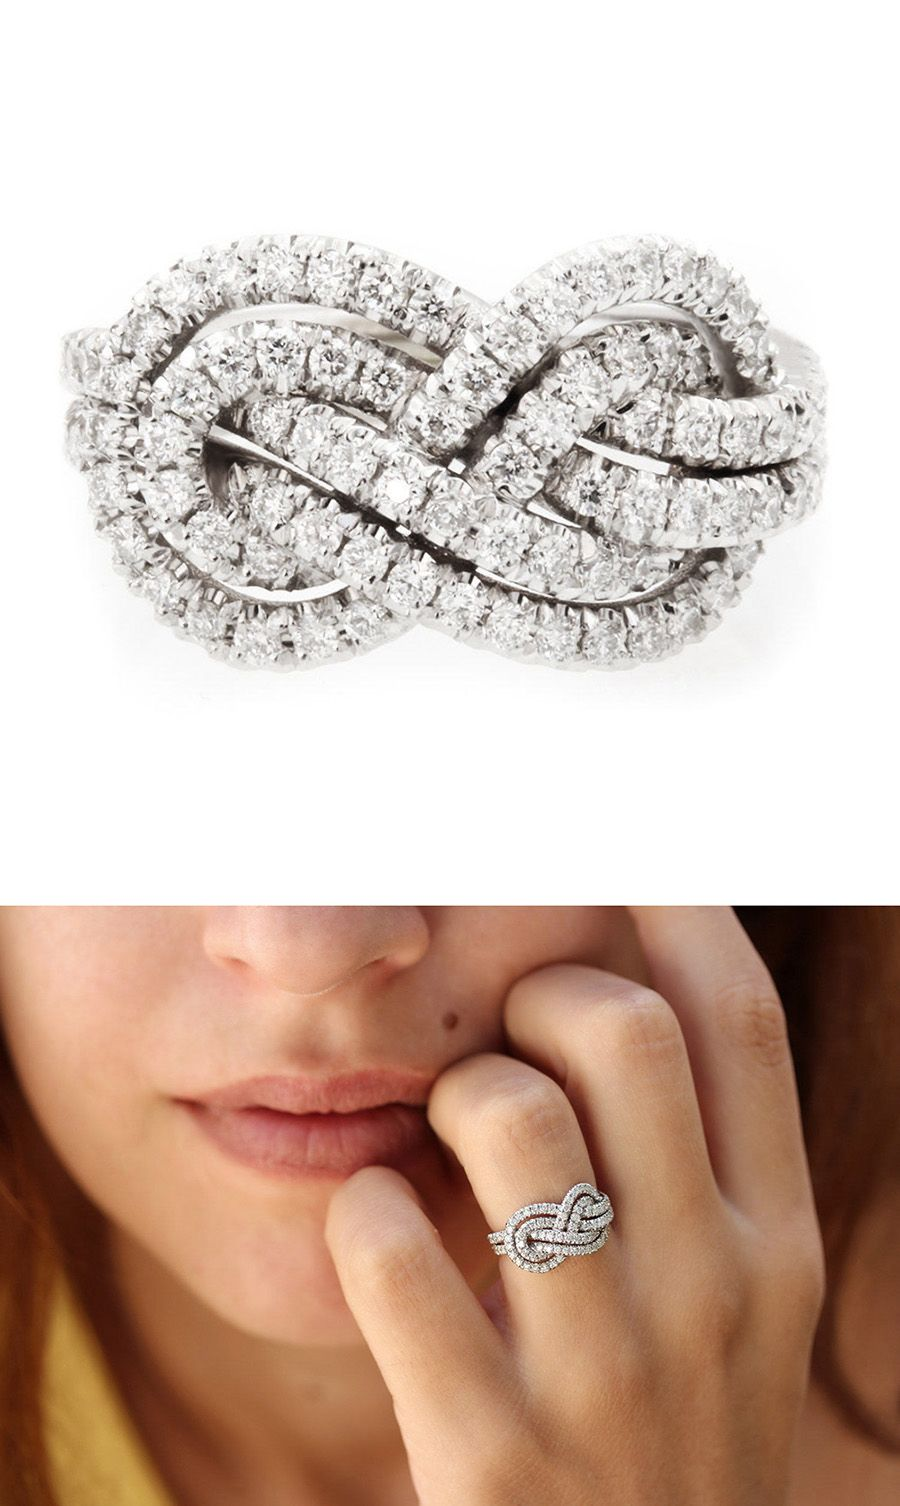 Double Infinity Knot Alternative Wedding Rings Women In Weddings Weigh On Engagement